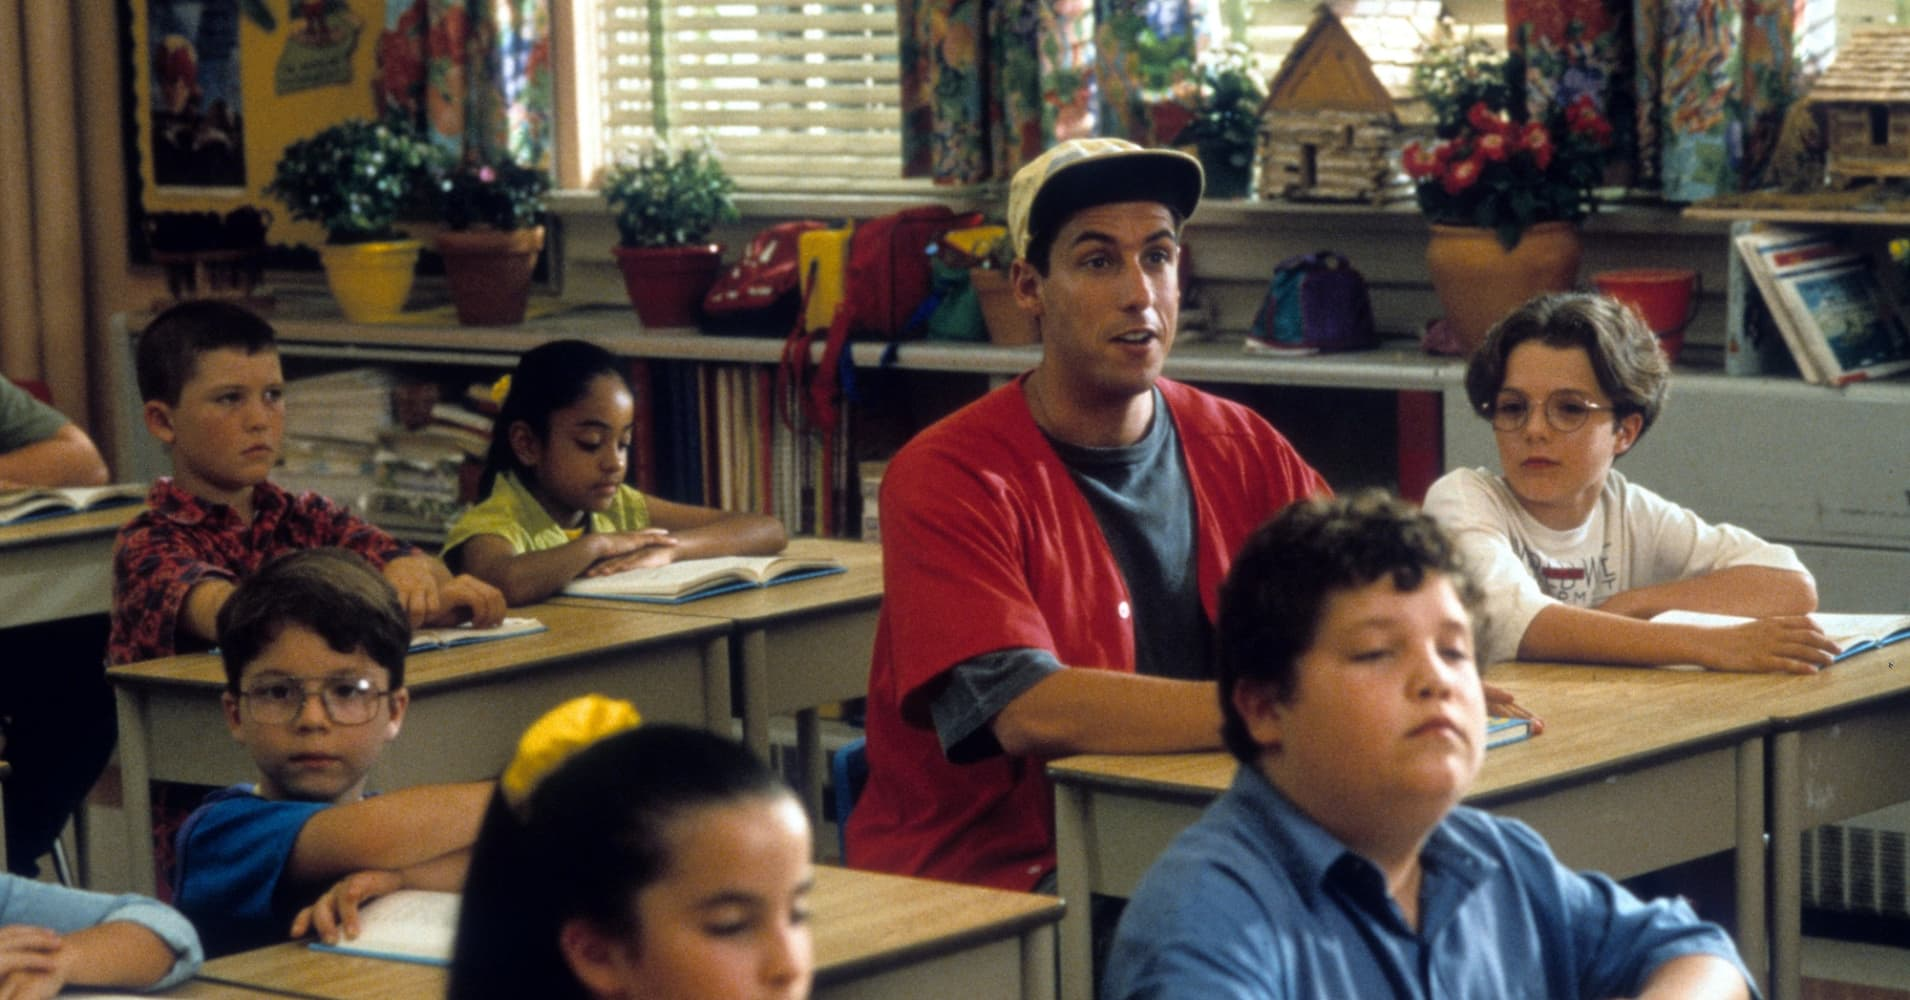 Adam Sandler in Universal Pictures' Billy Madison